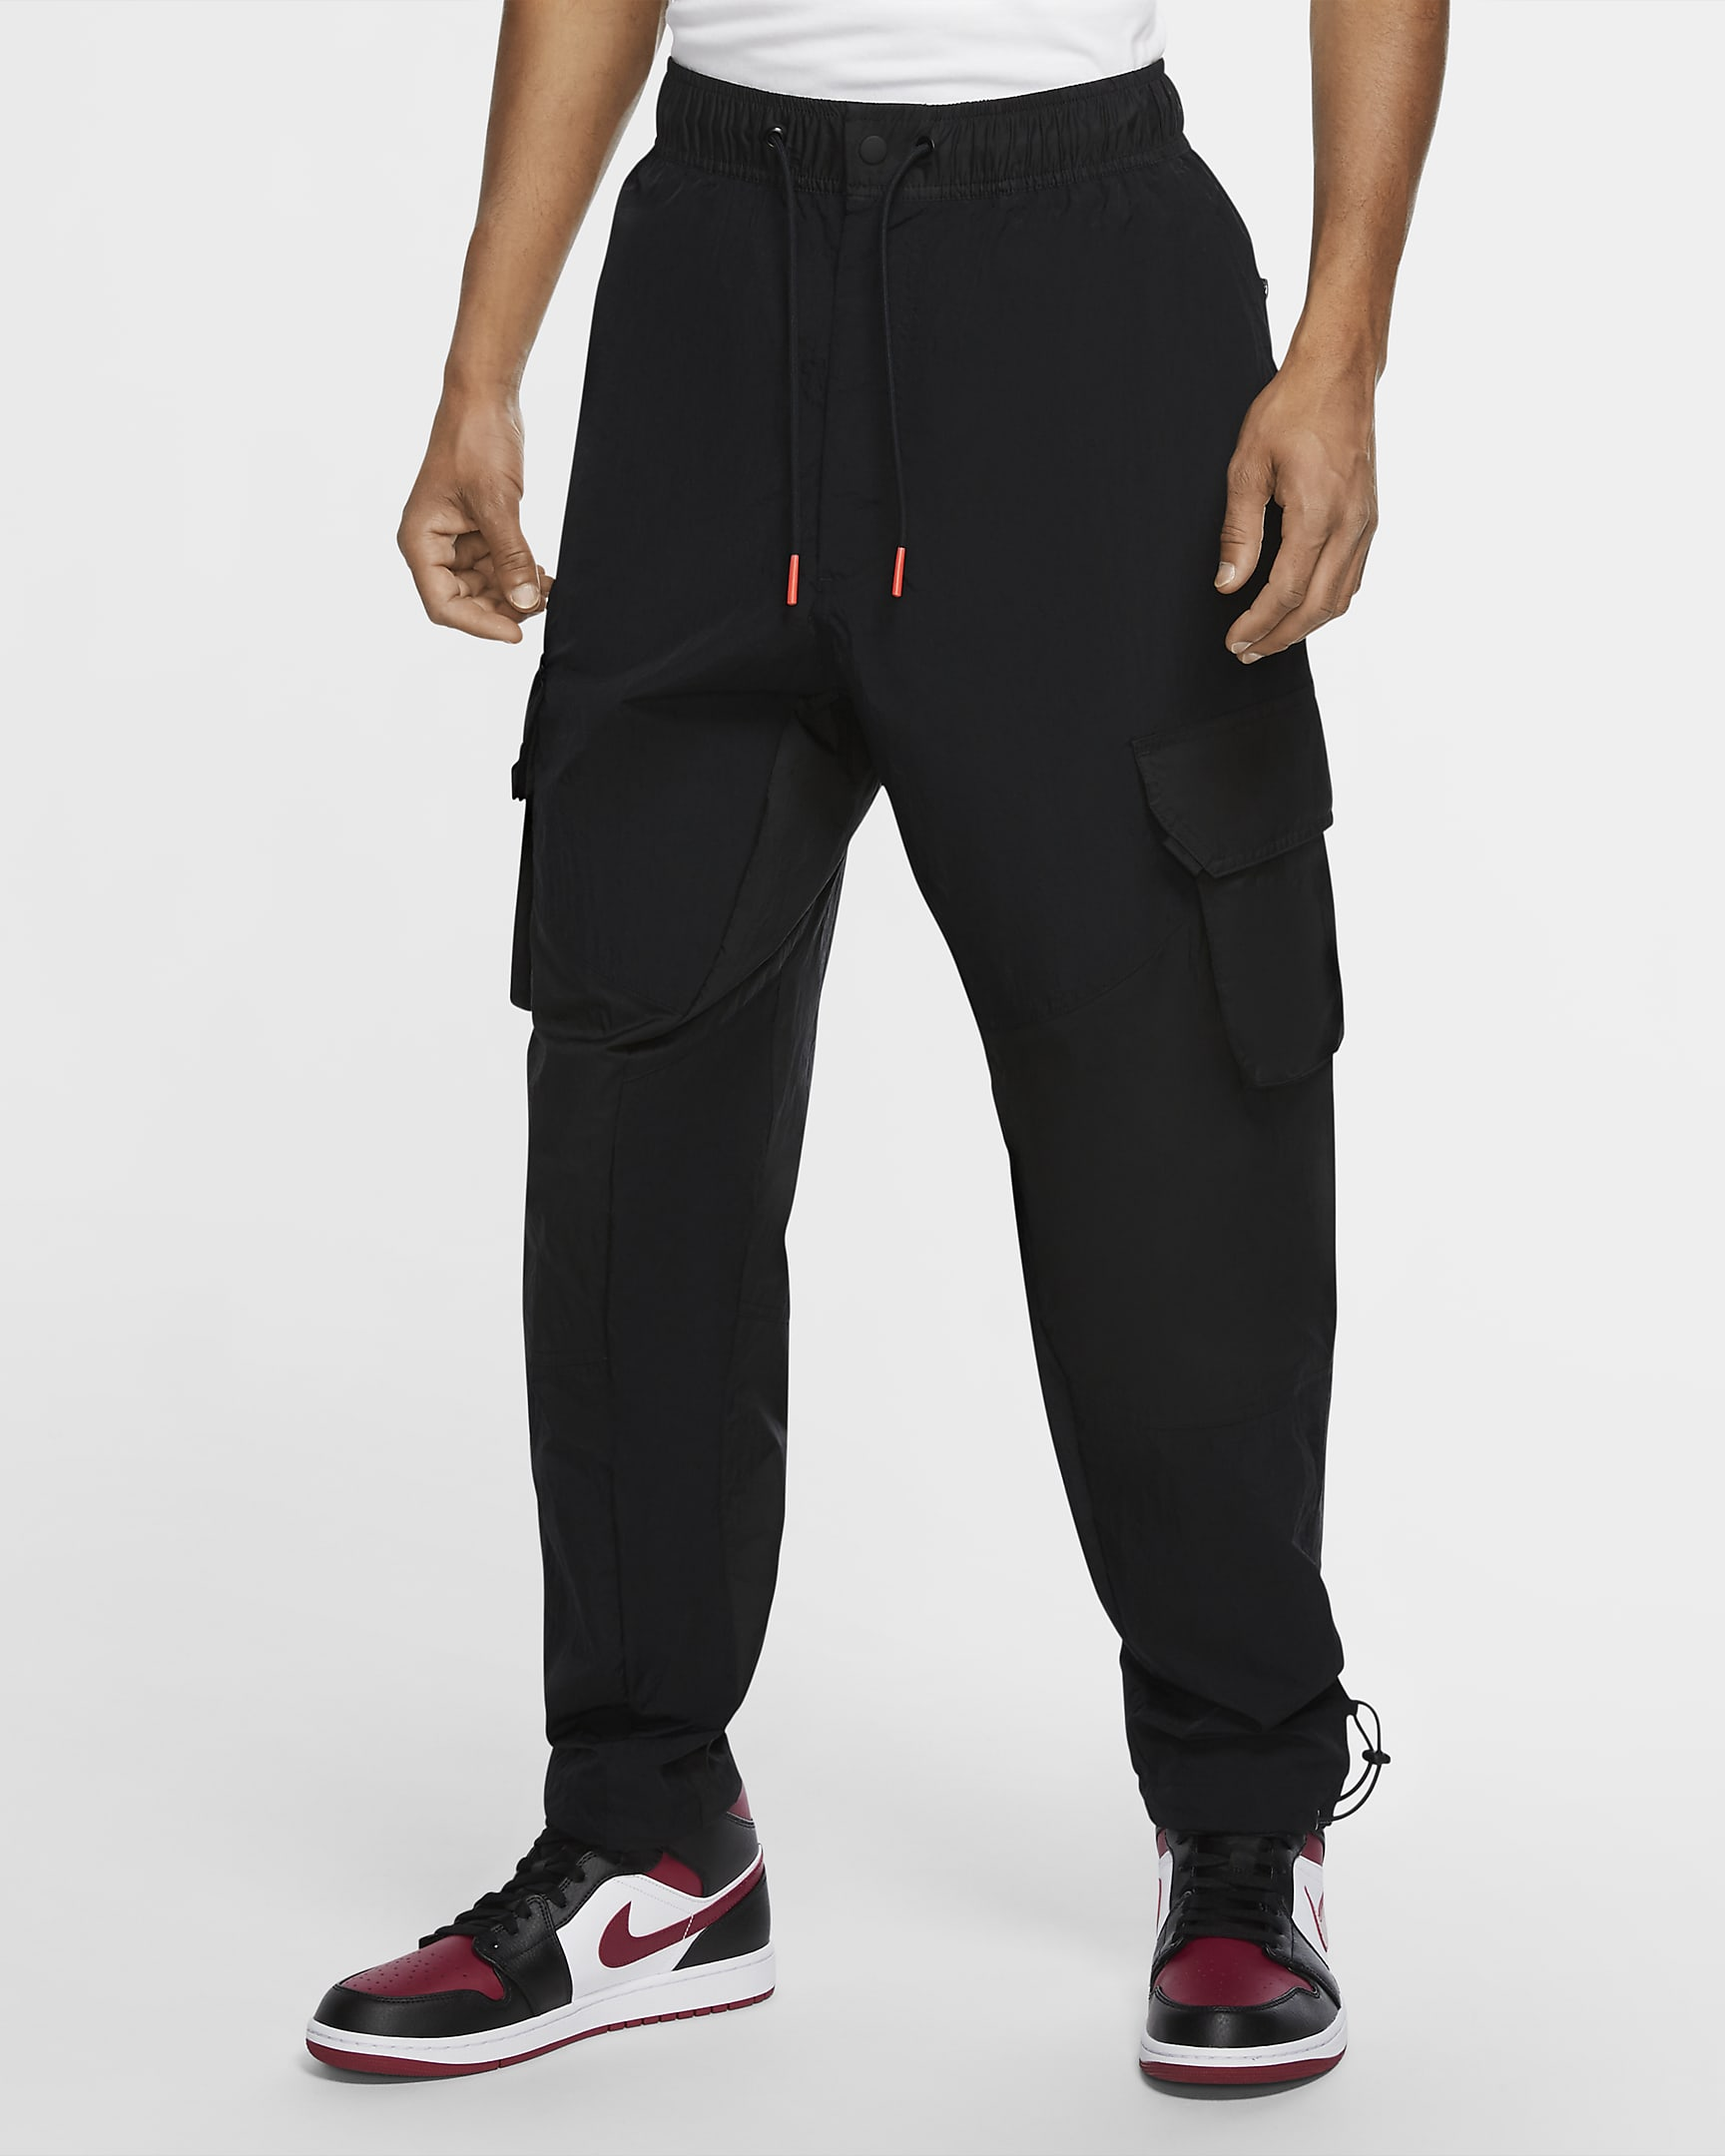 jordan-23-engineered-mens-cargo-pants-HtXMBm